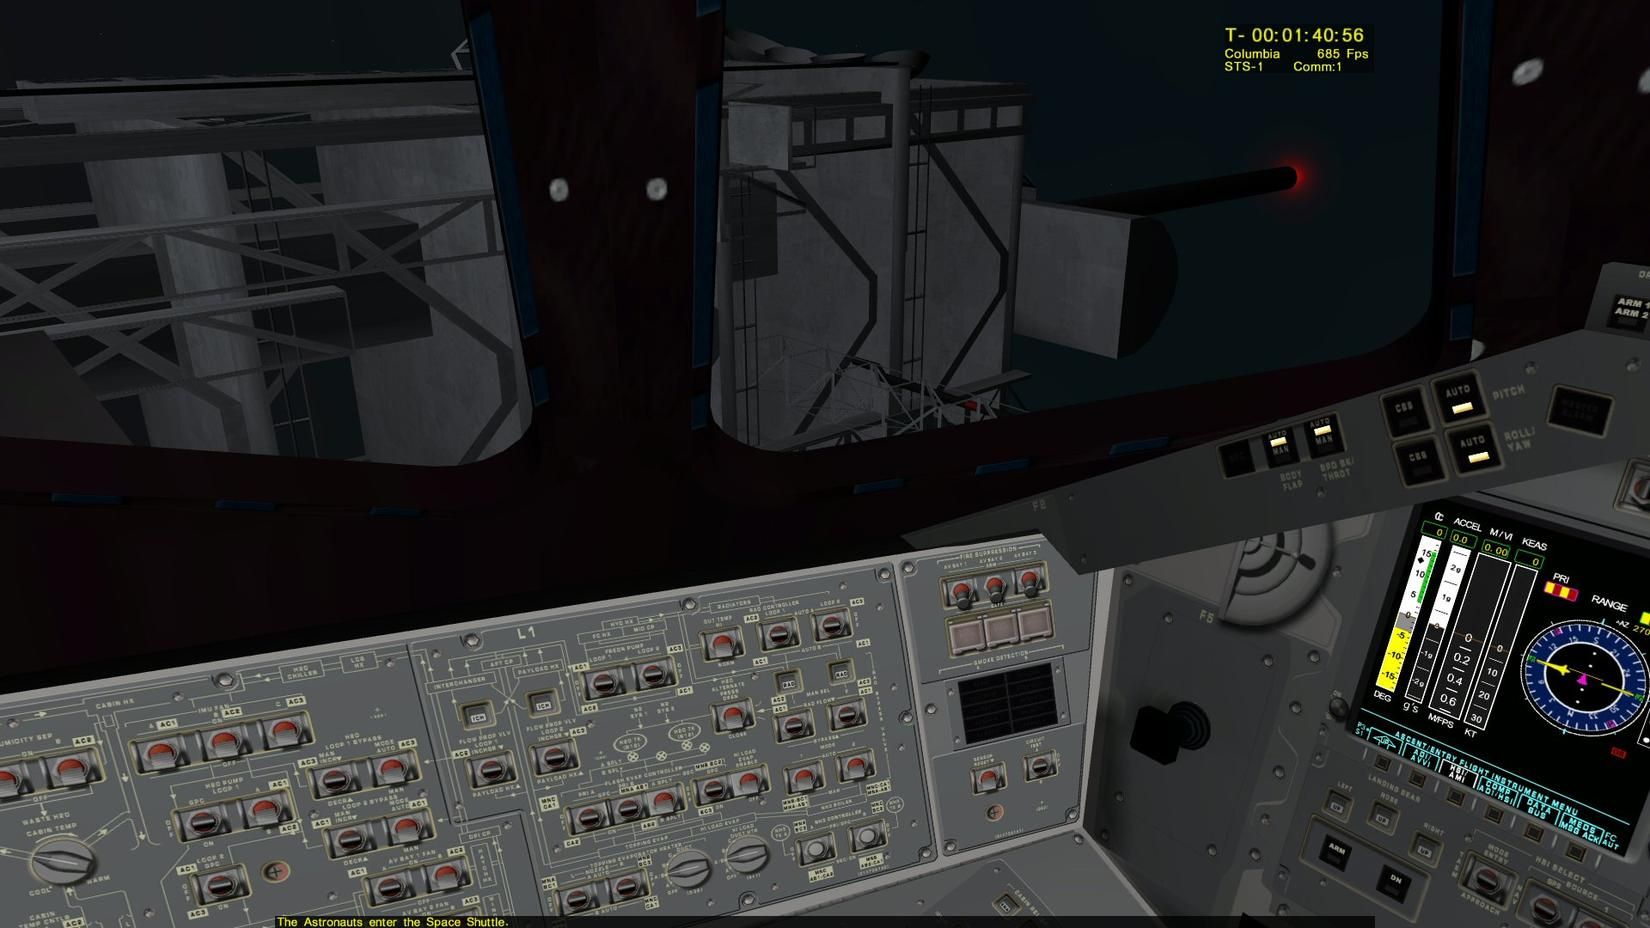 Space Shuttle Glass Cockpit (page 4) - Pics about space